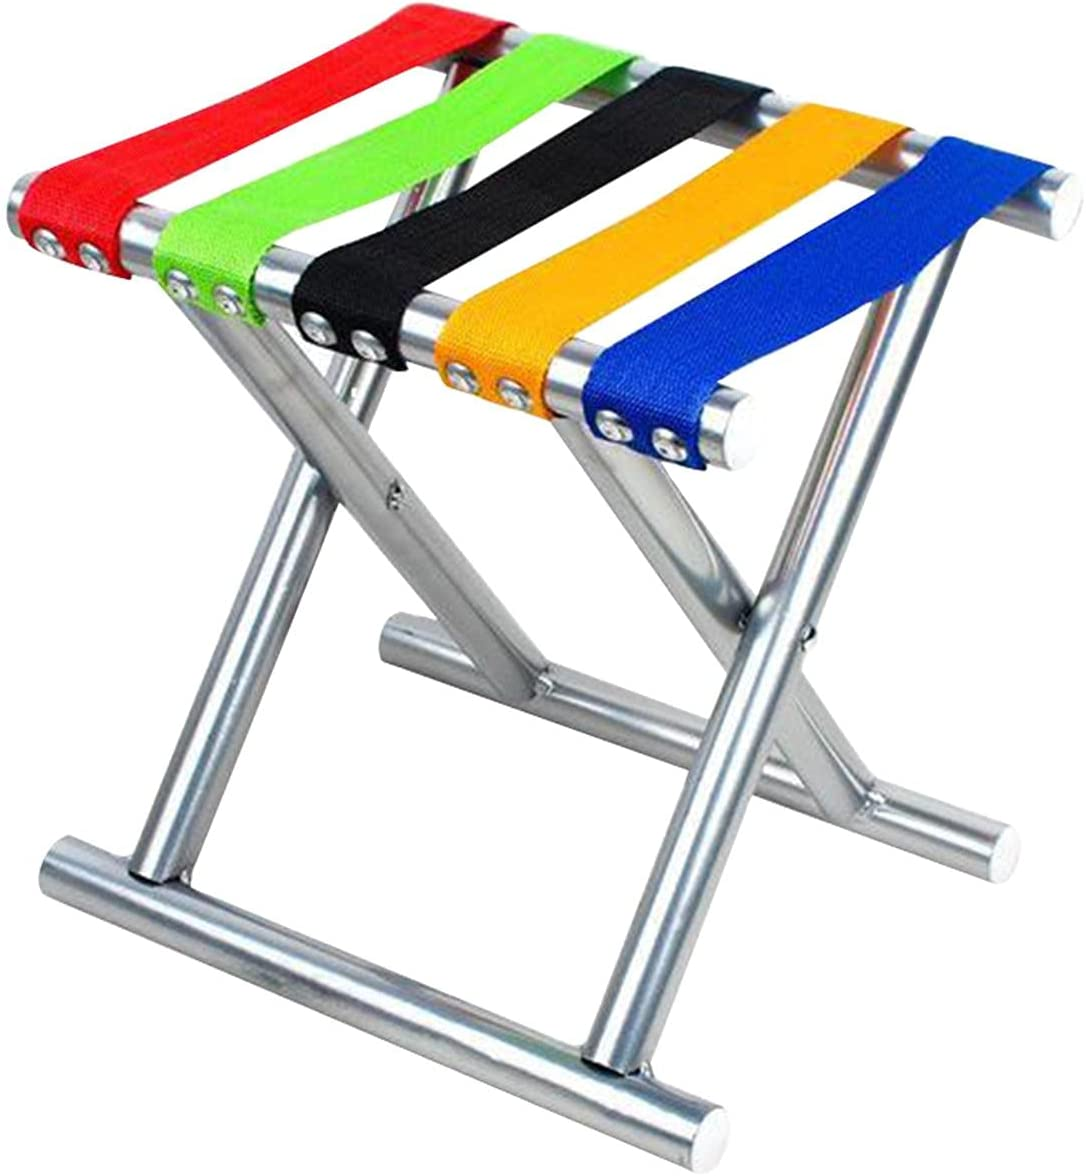 Saycker Camping Stool New arrival Heavy-Duty Folding Portable Outdoor Recommended